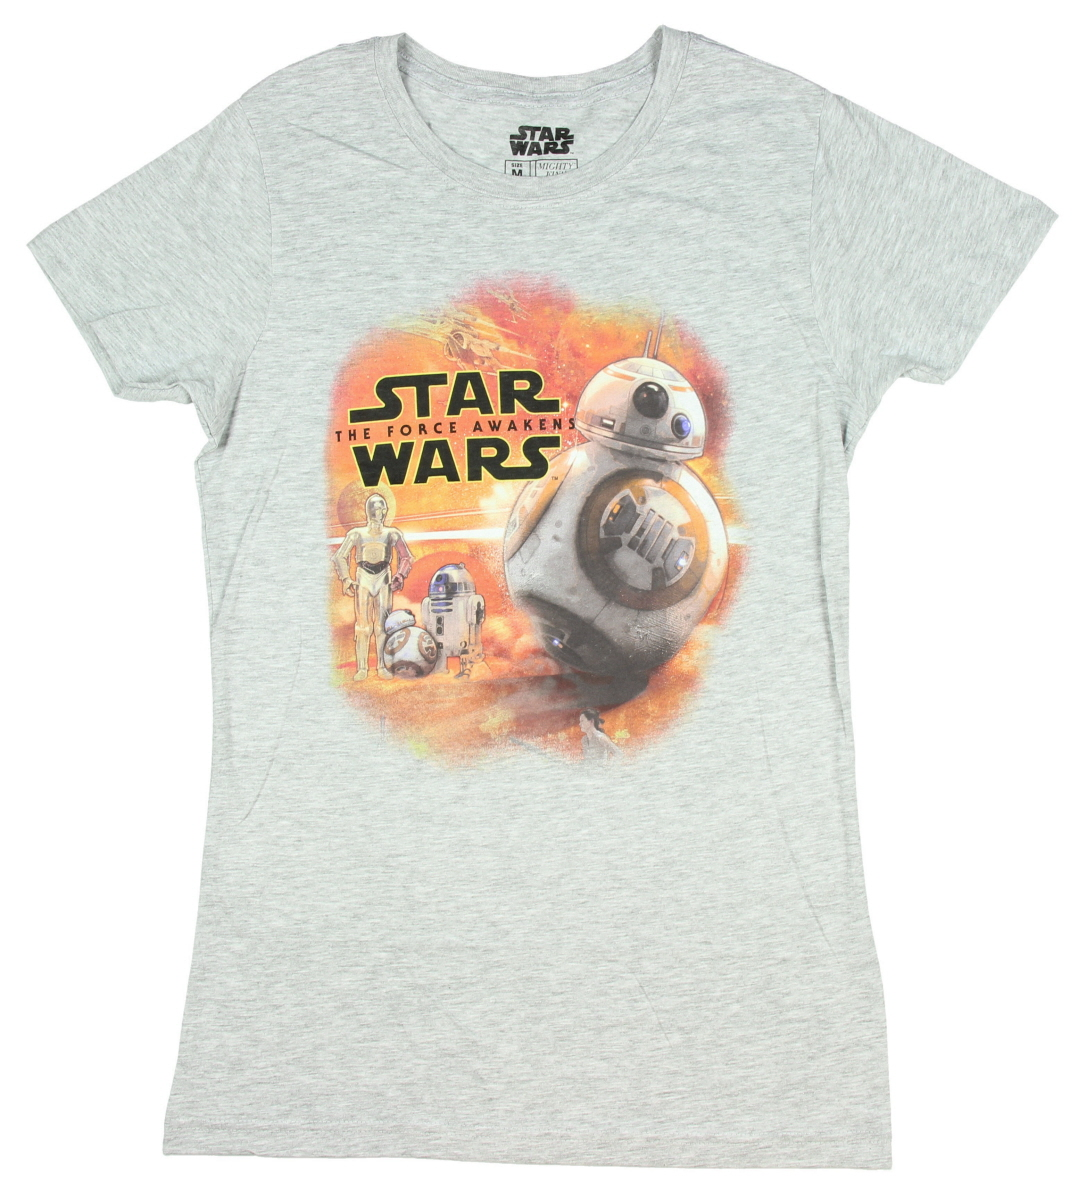 Star Wars BB-8 R2-D2 C-3PO Droid Collage Movie Fan Apparel Juniors T-Shirt